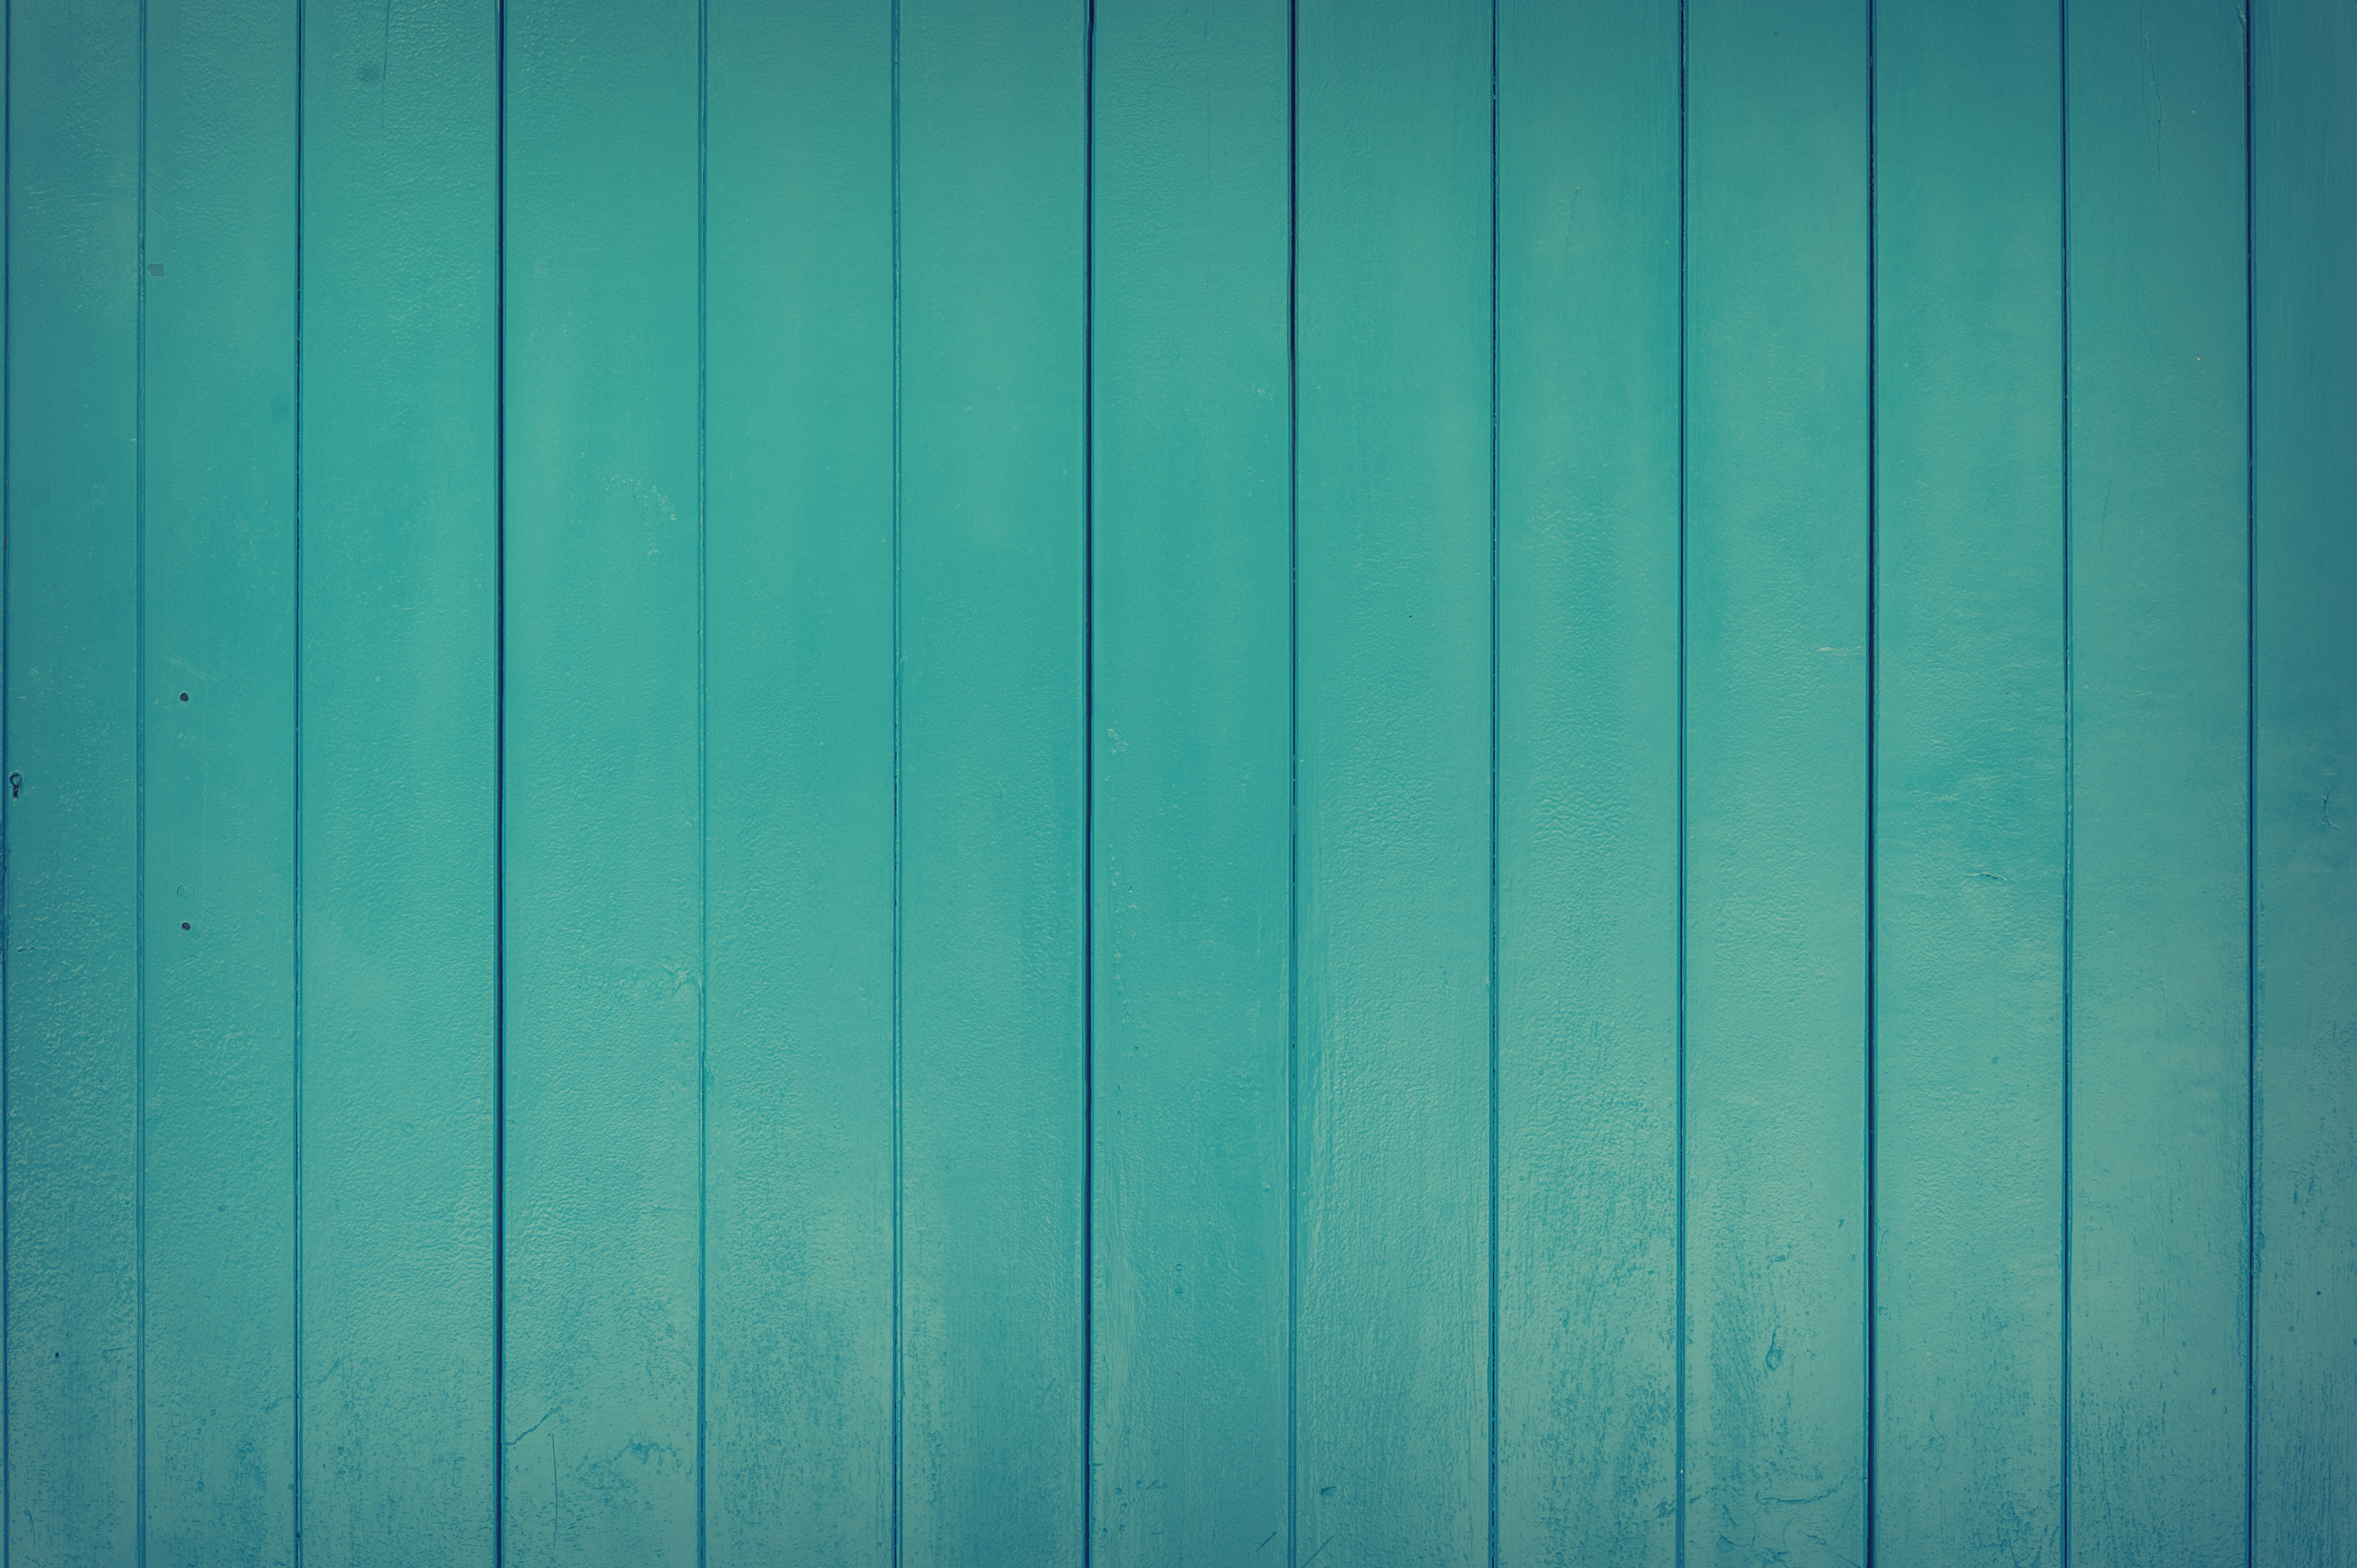 Green Wooden Fence · Free Stock Photo